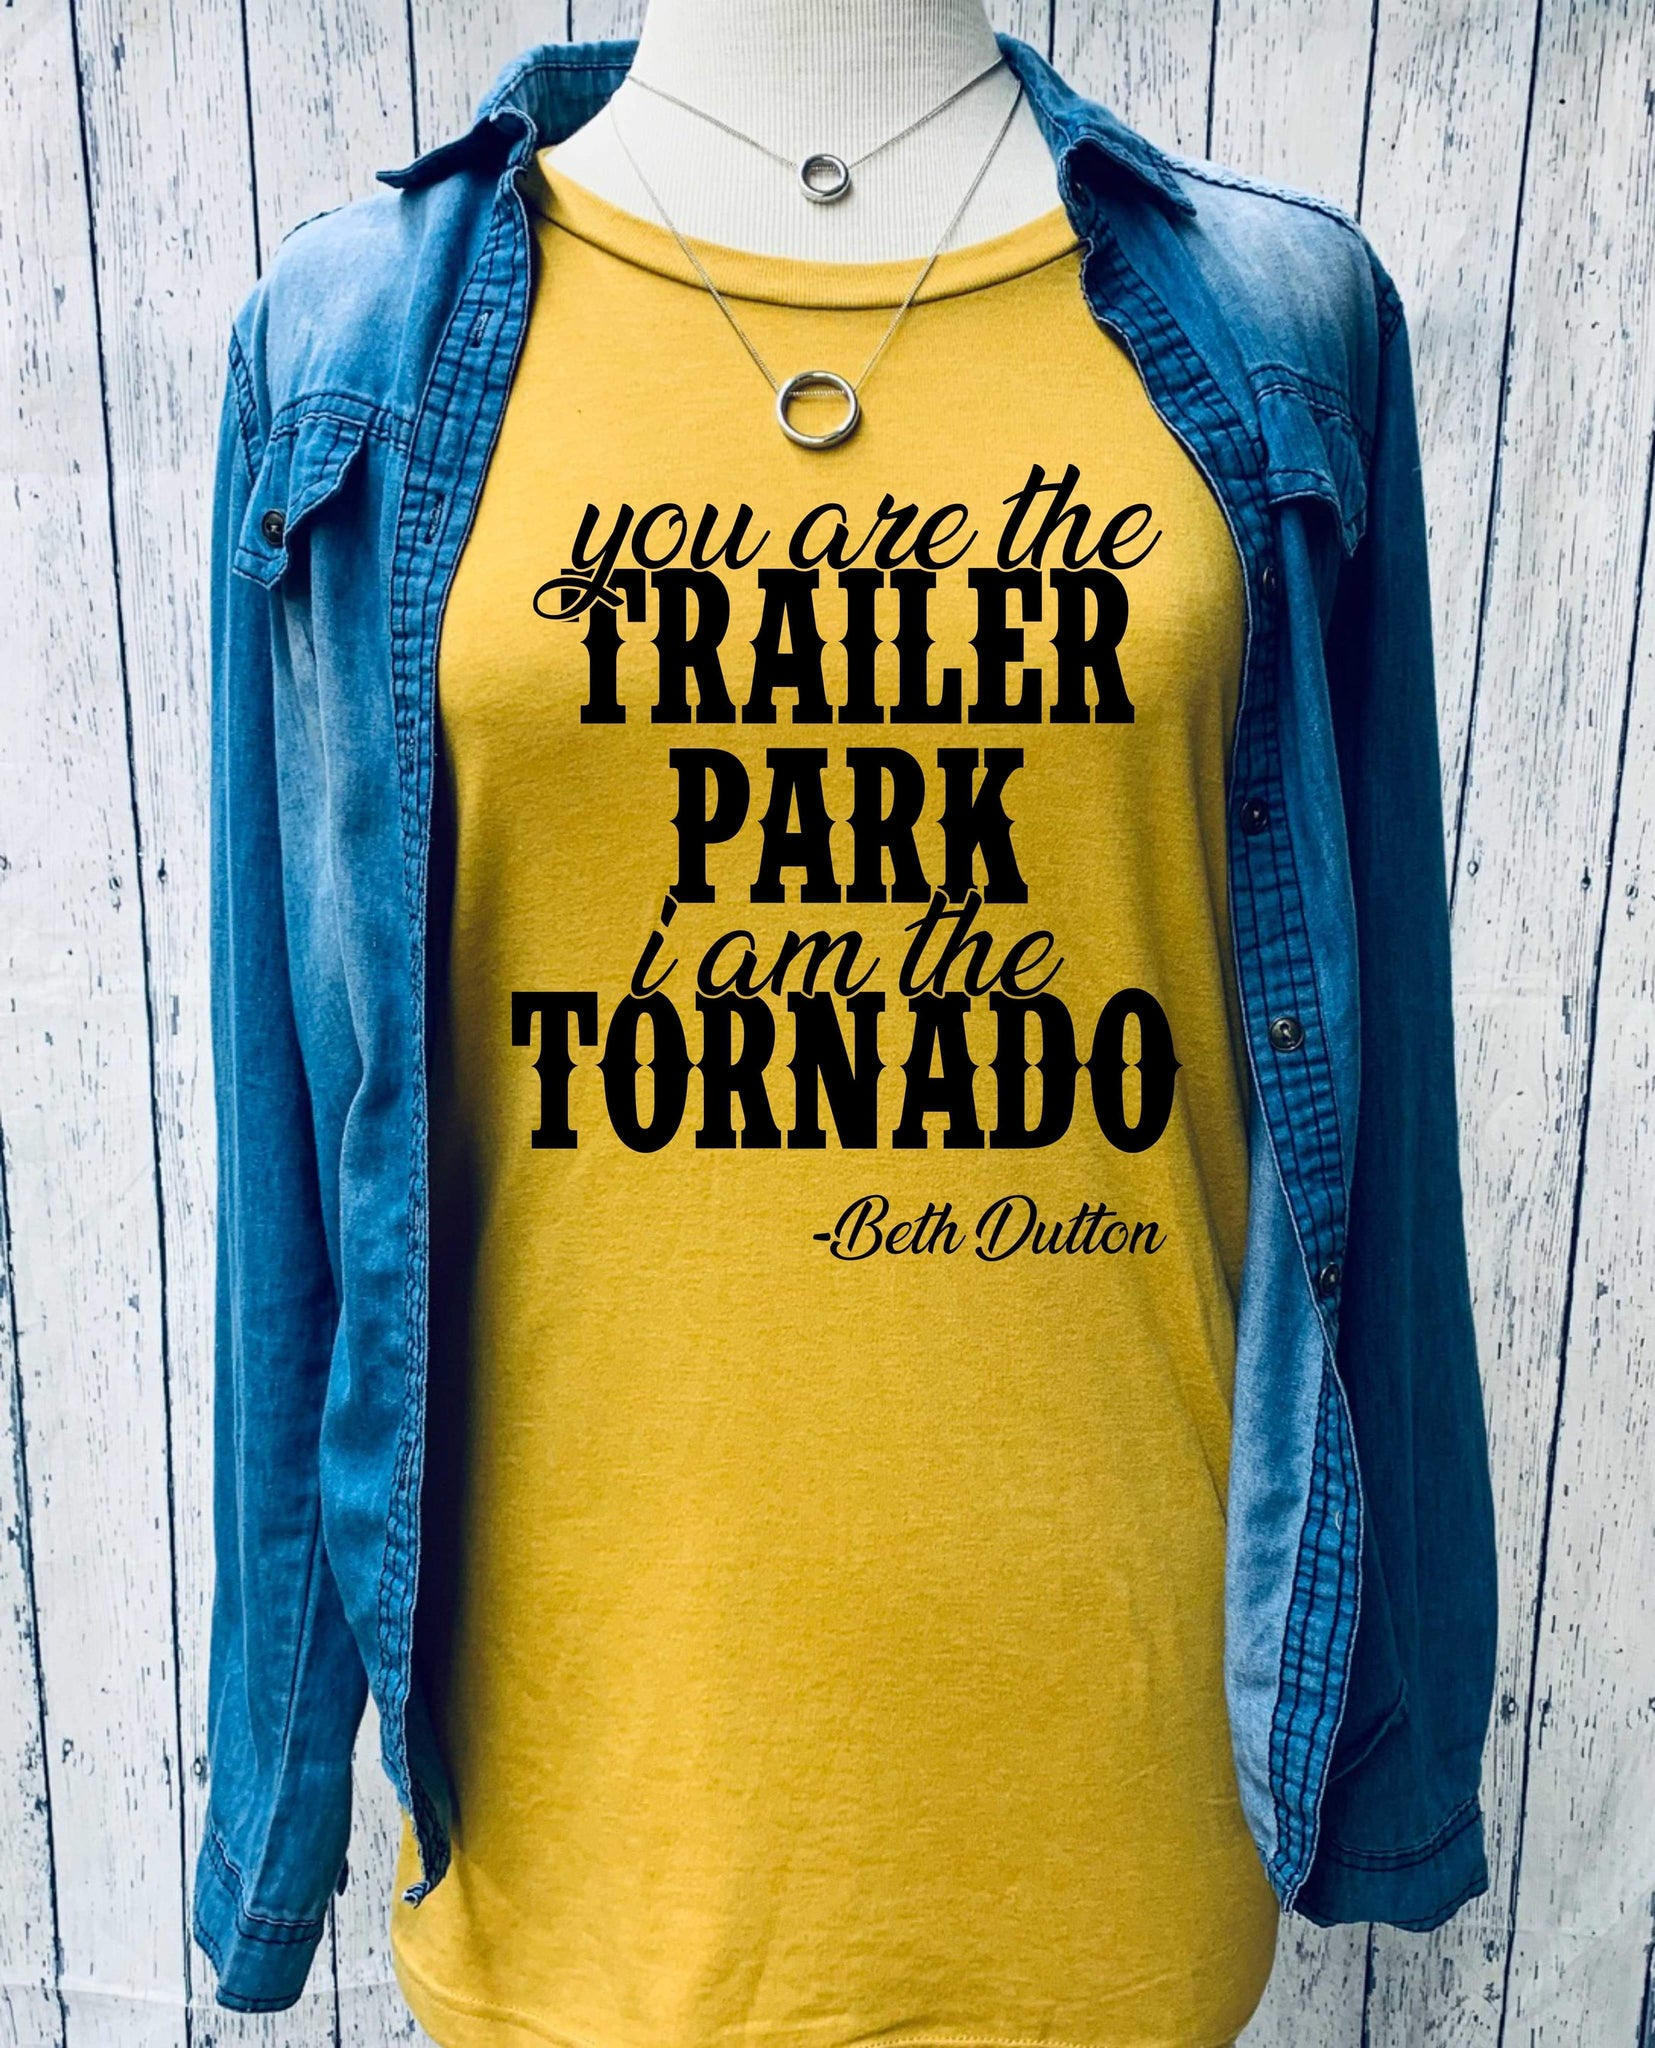 you are the trailer park I am the tornado